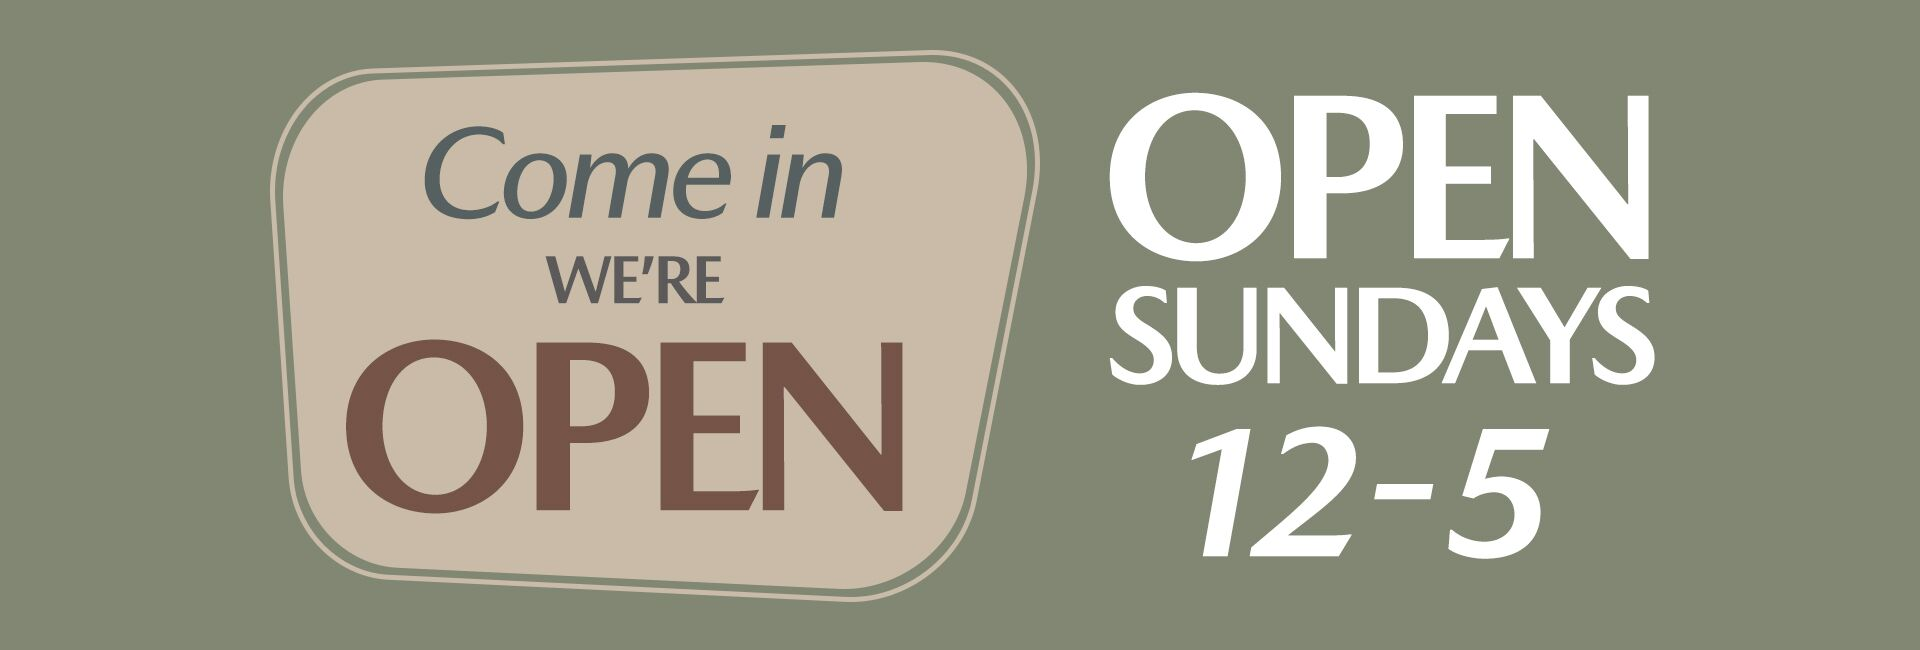 Open Sundays